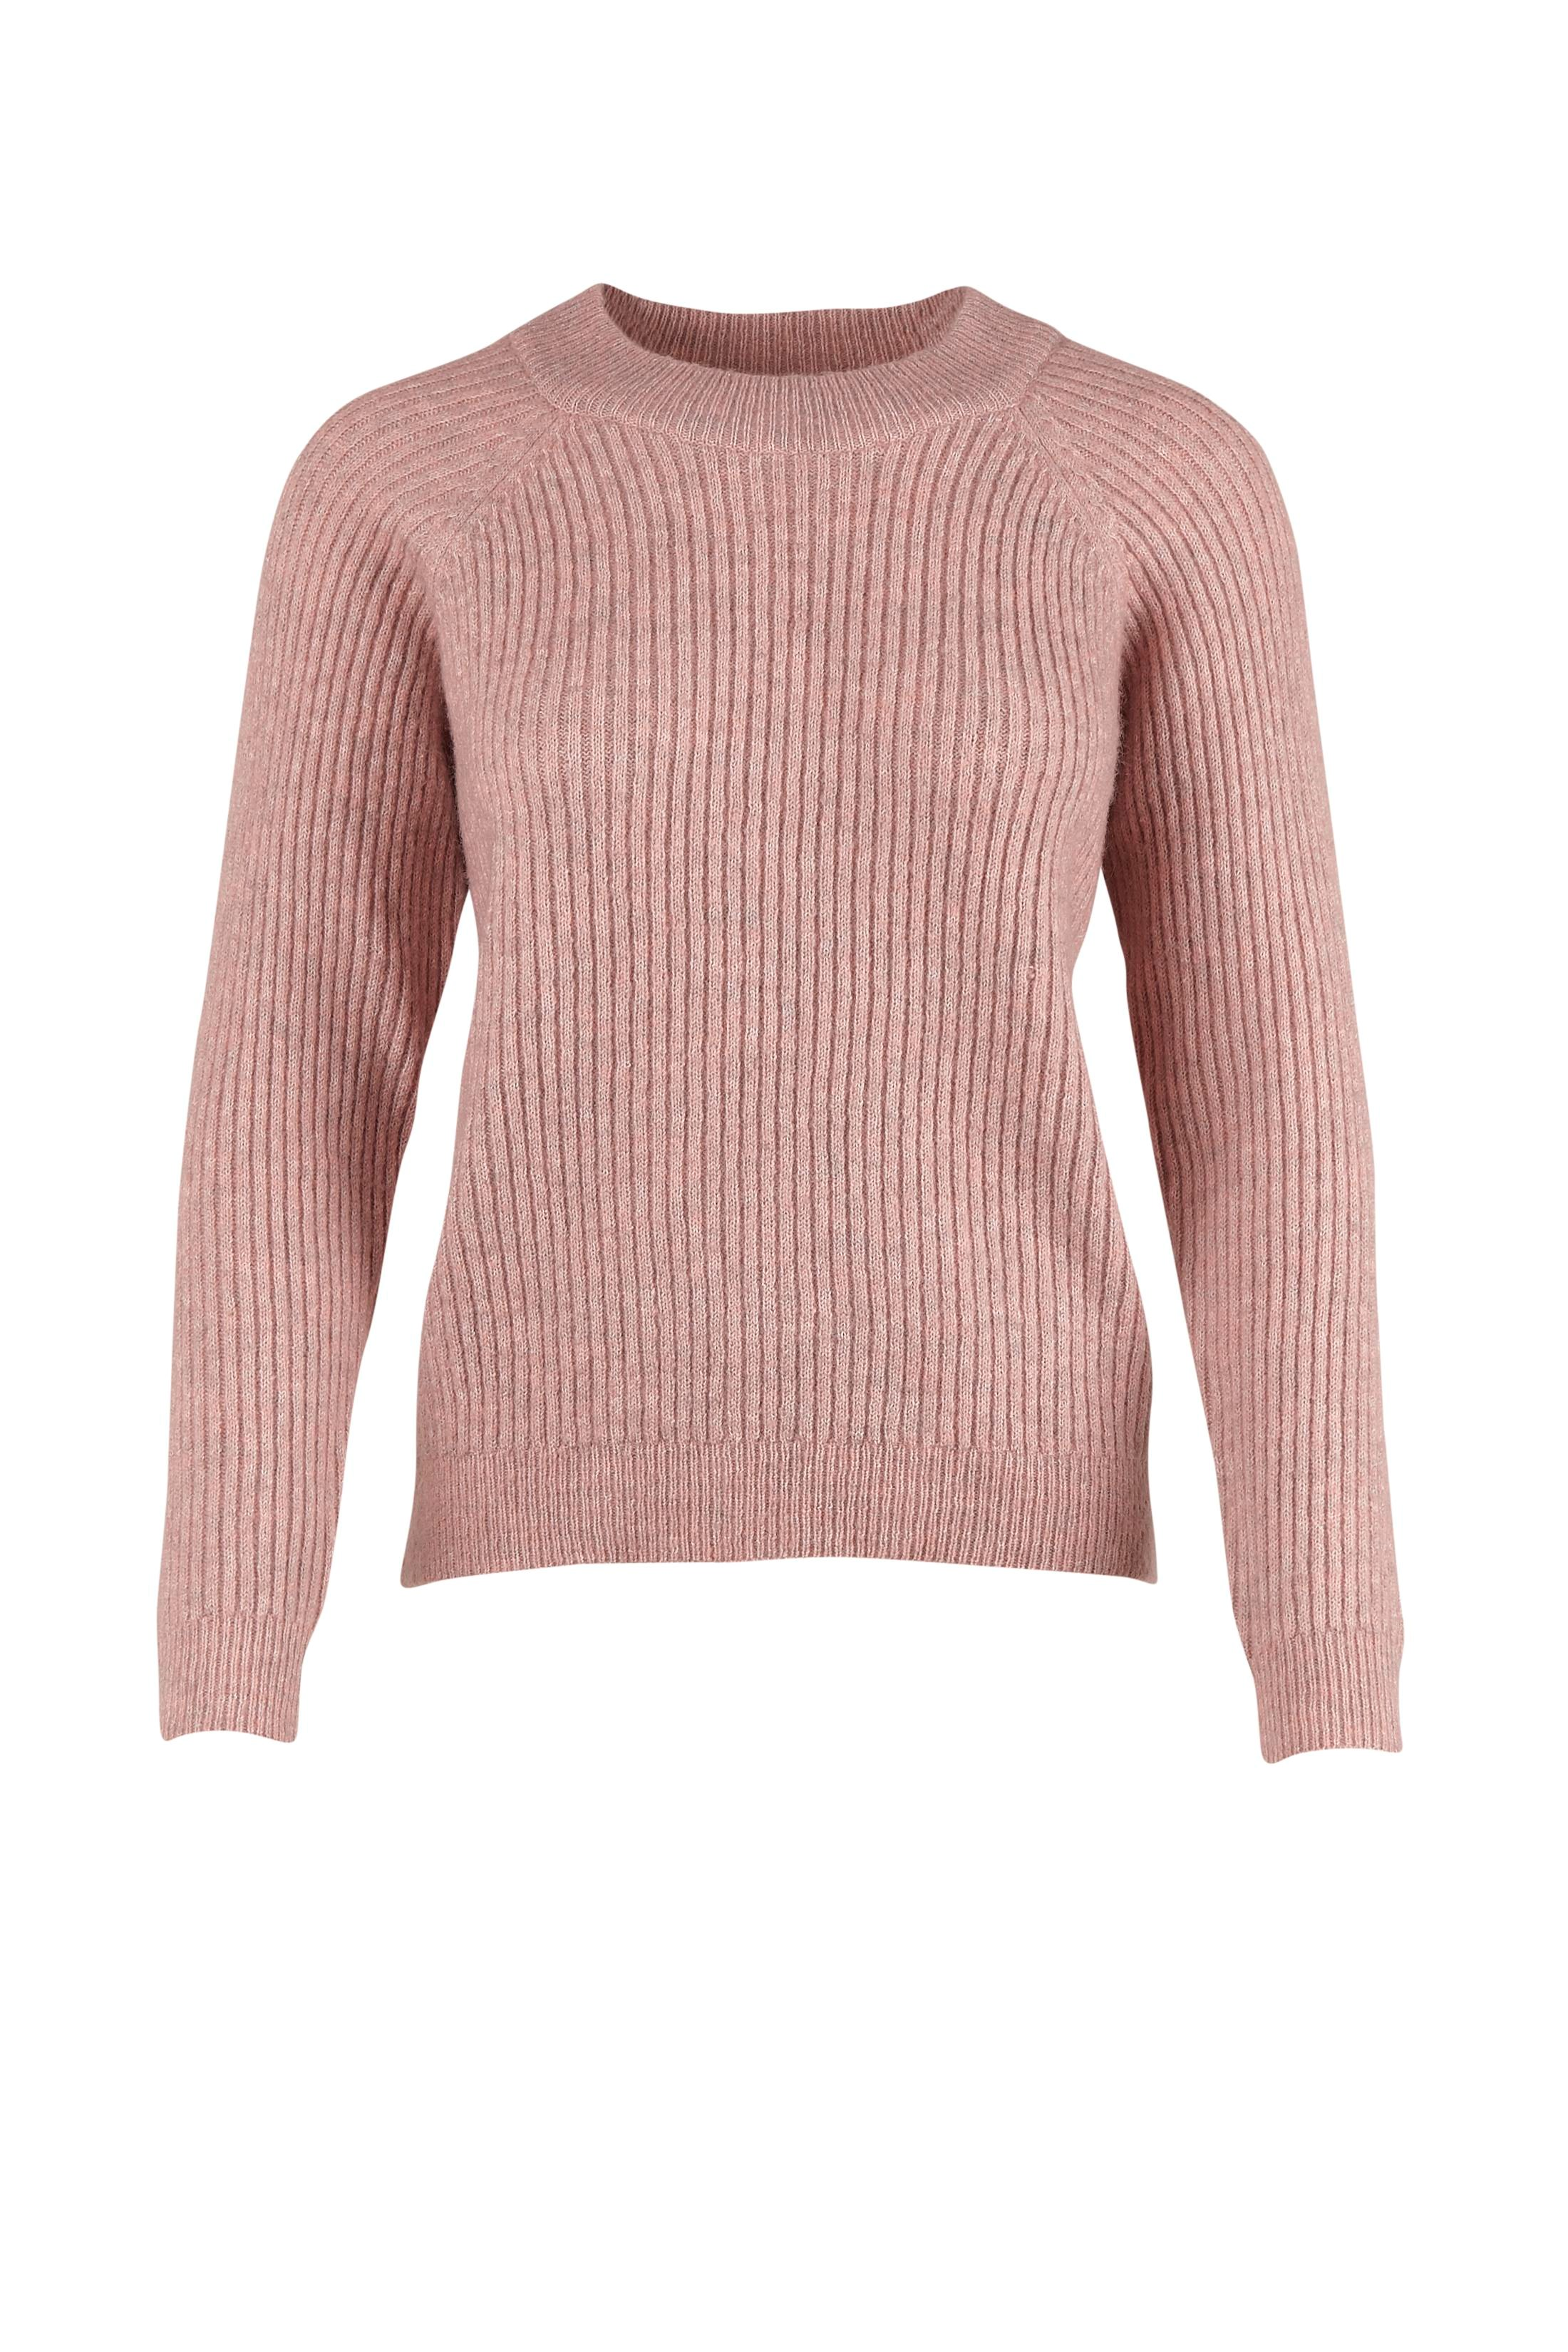 RIB KNIT SWEATER | ROSE